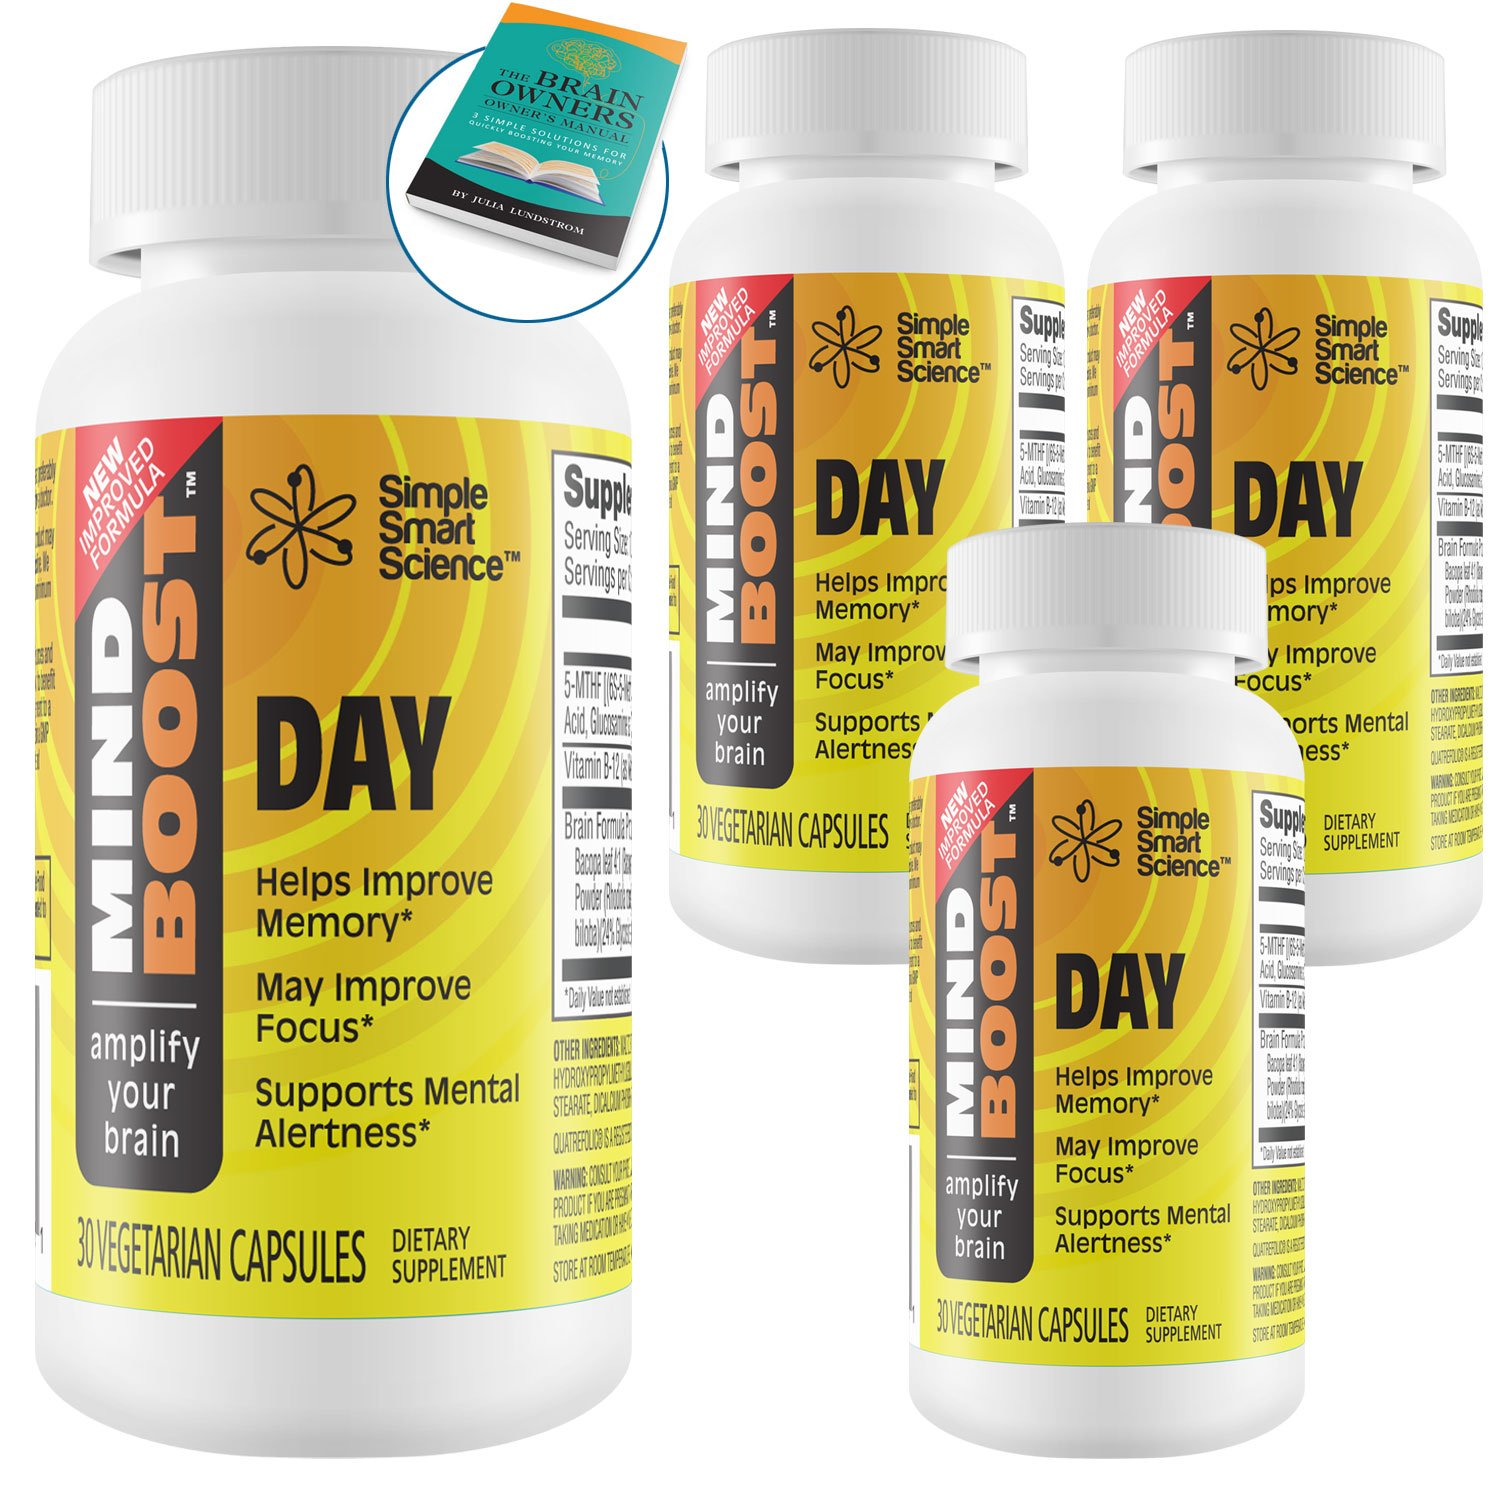 Boost Your Memory - Clinically Formulated Premium Supplement for Enhanced Memory, All-Day Focus & Energy. 100% Guaranteed Proprietary Formula Using Therapeutic Dosages That Support Clinical Trials.